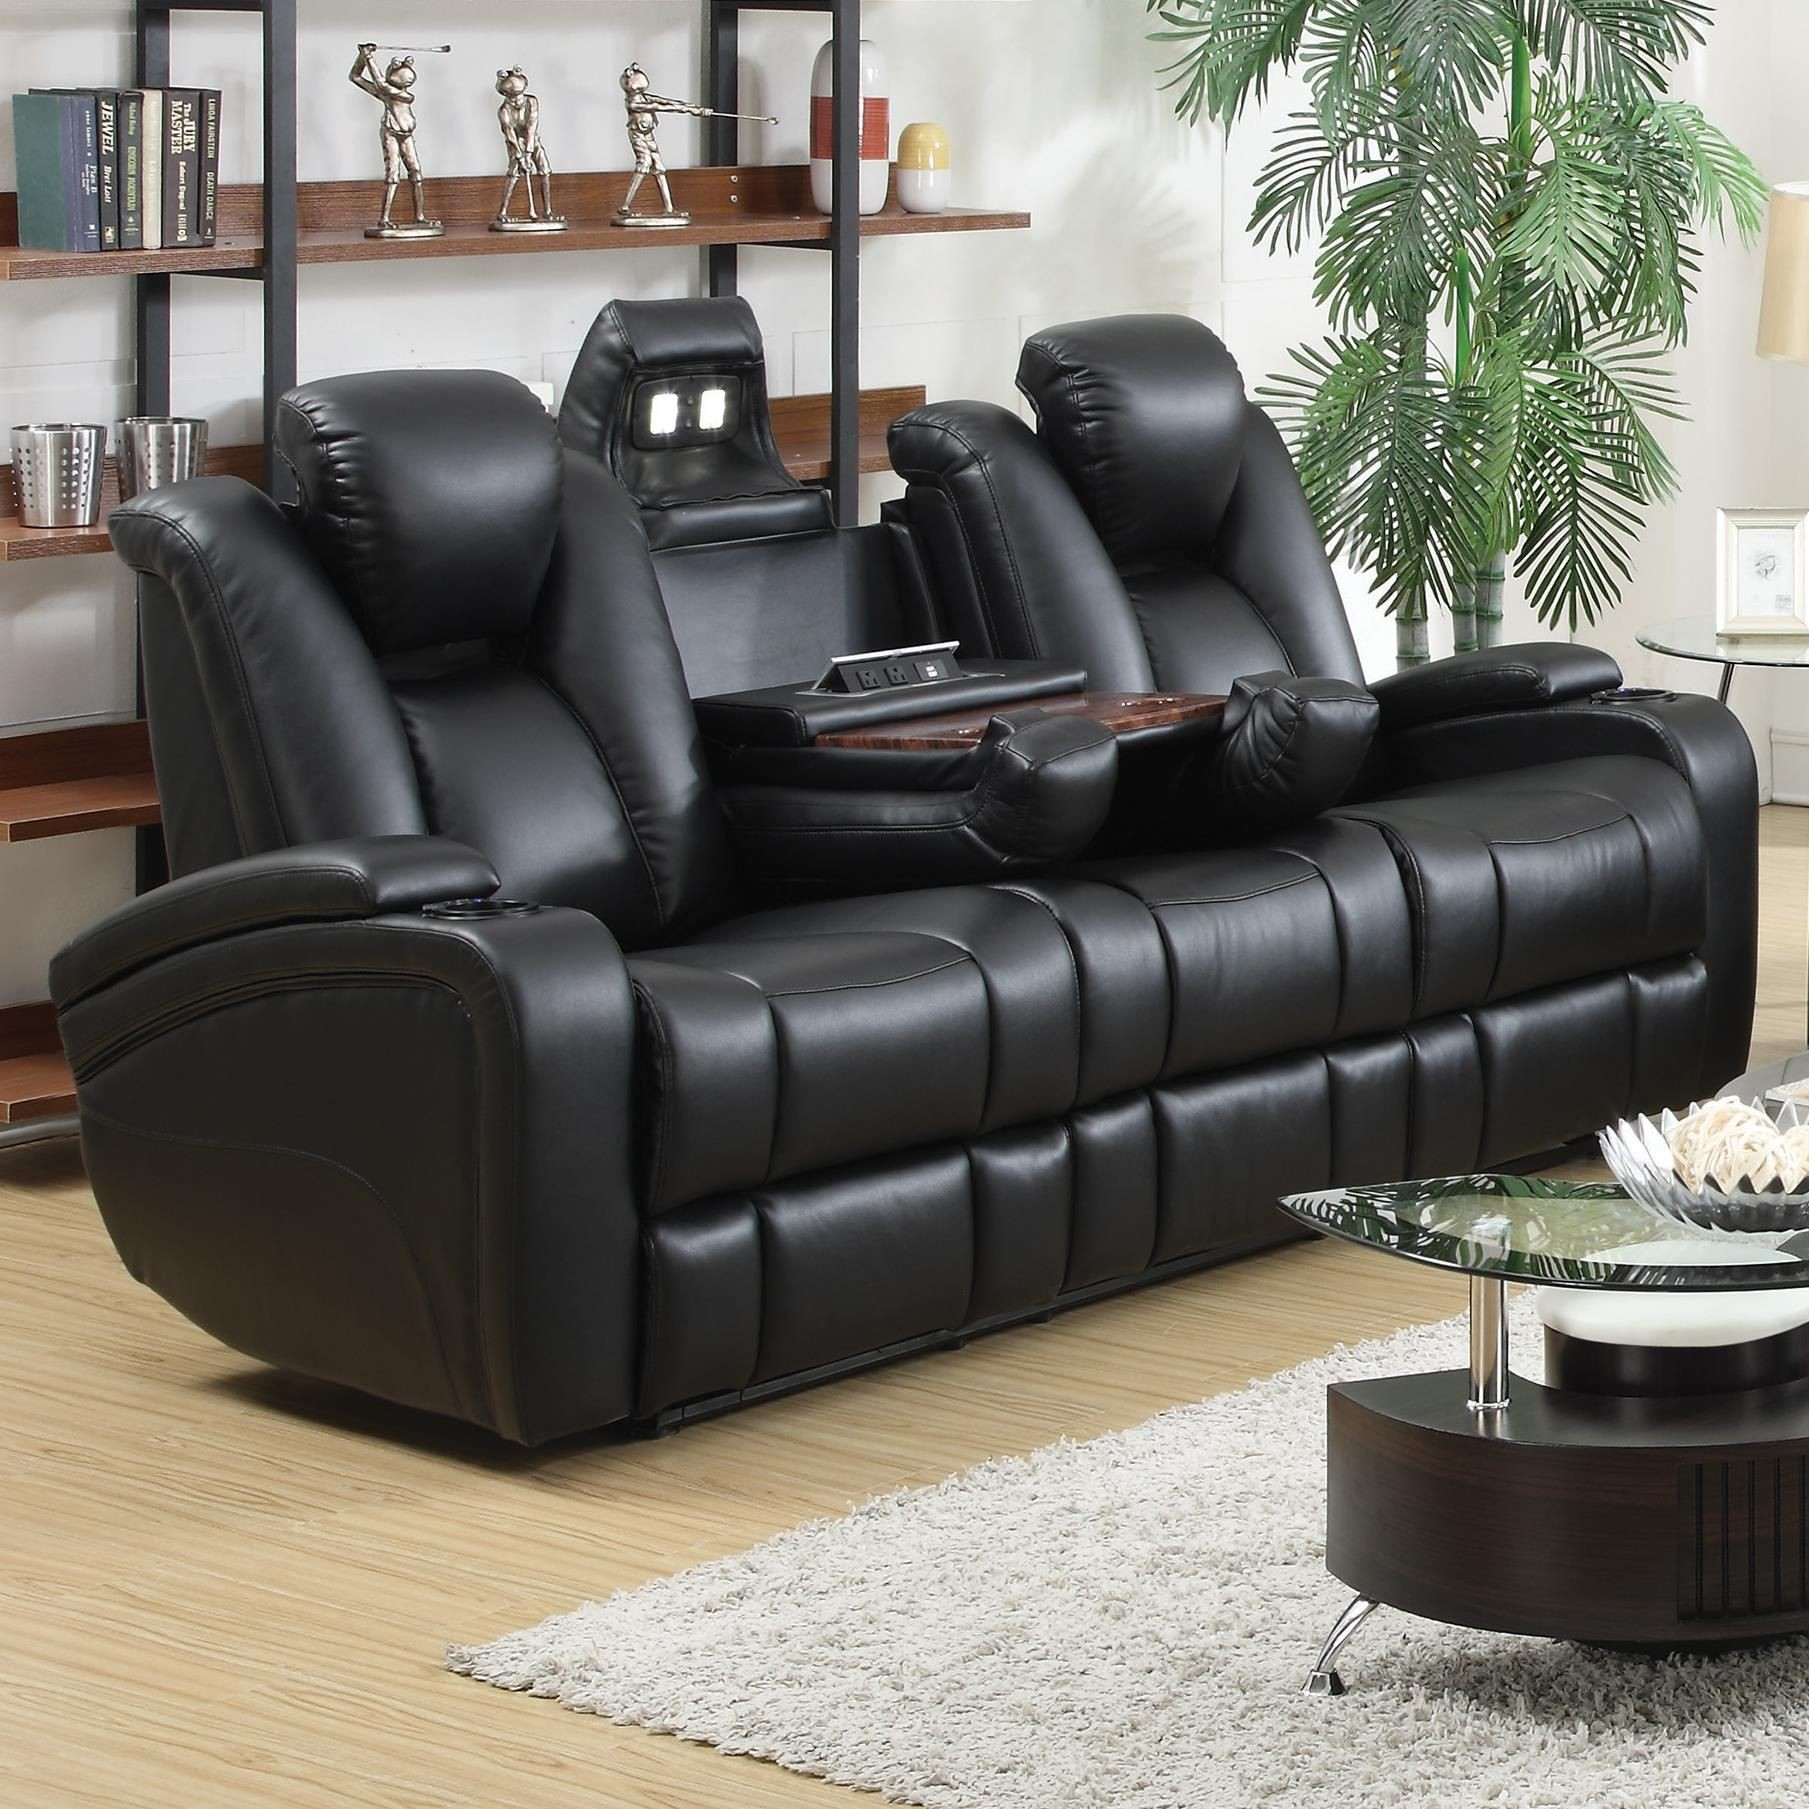 Power Reclining Sofa Reviews Catosfera Net ~ Baycliffe Reclining Sofa Reviews